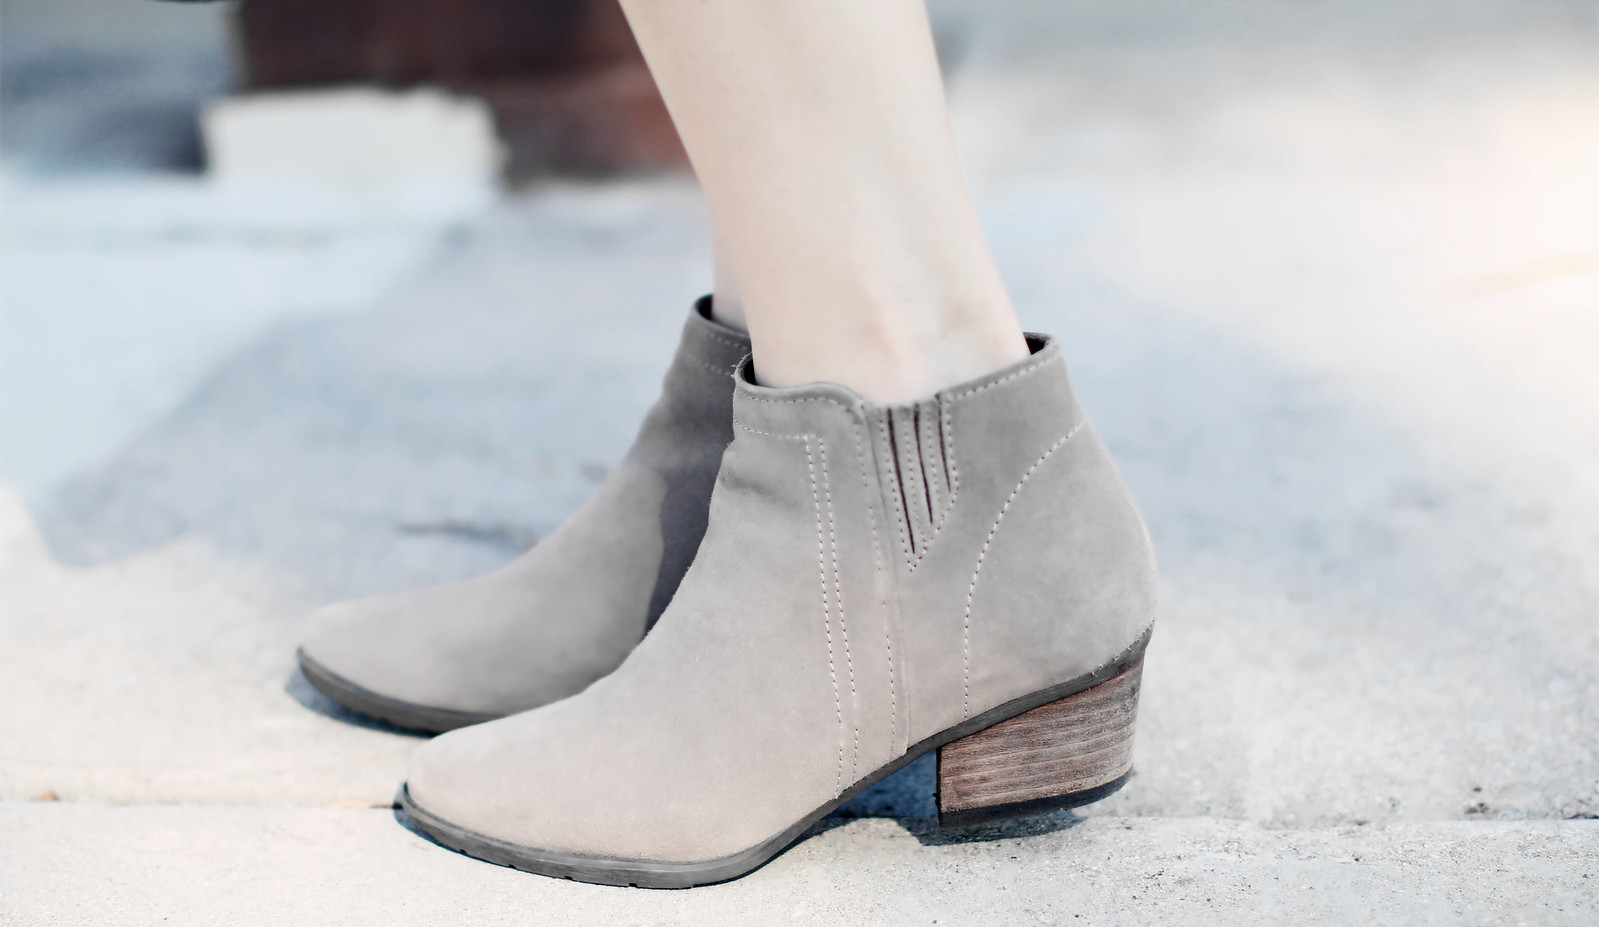 0958-blondo-nordstrom-booties-fashion-ootd-autumn